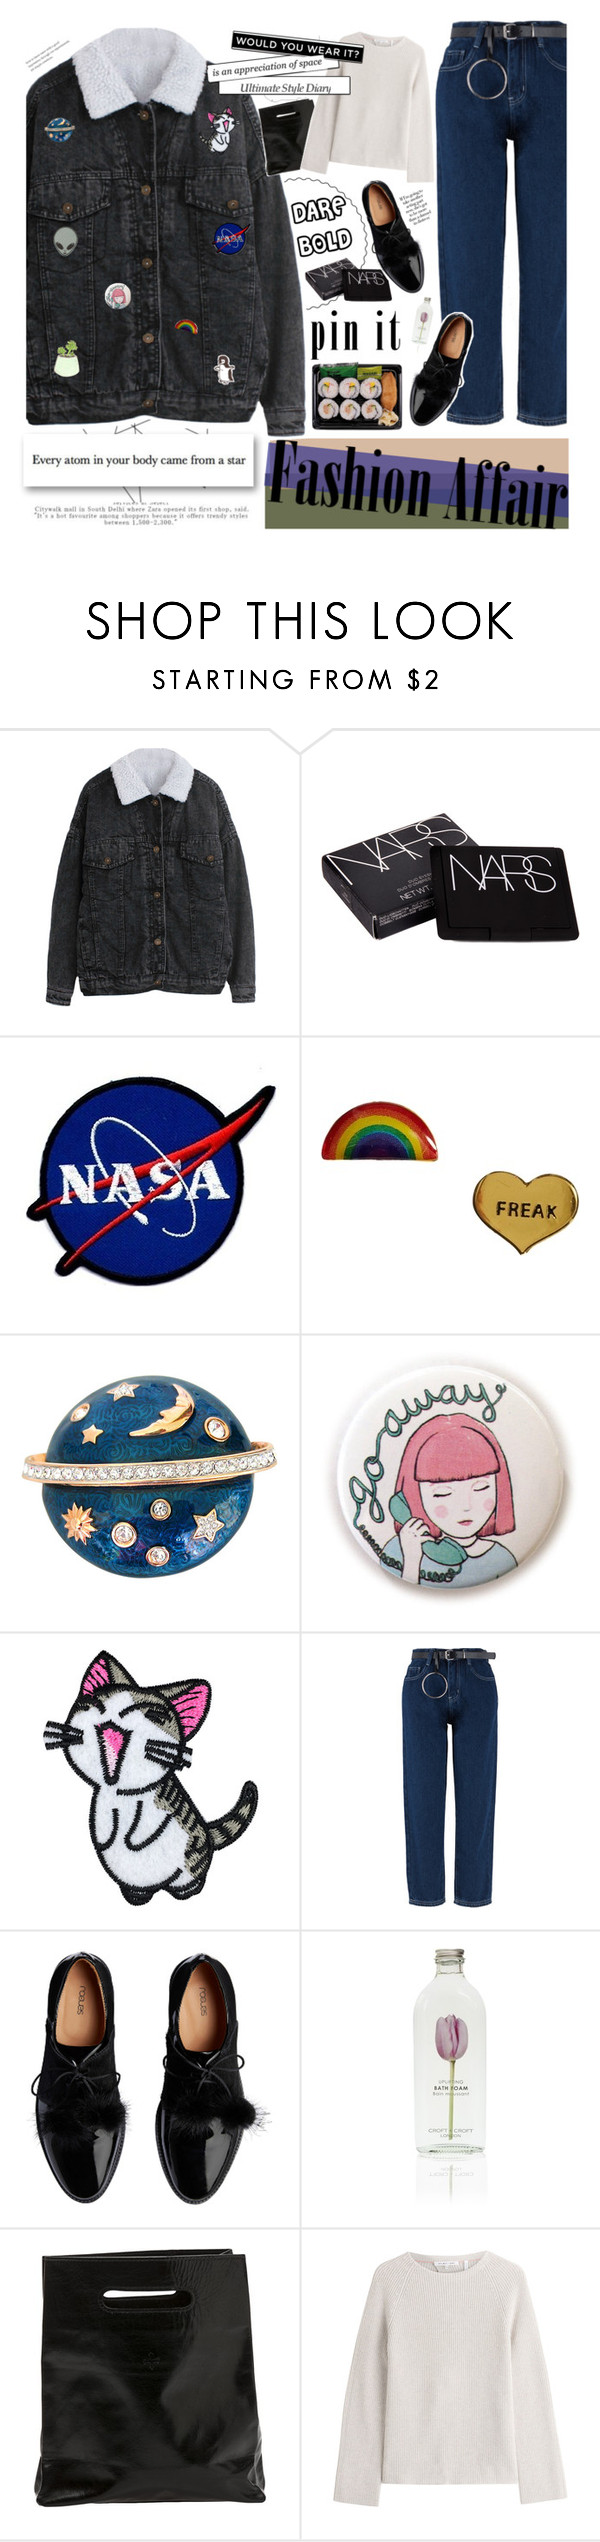 """""""pins win"""" by coreeadis ❤ liked on Polyvore featuring NARS Cosmetics, Me & Zena, Swarovski, Marie Turnor, Helmut Lang and pins"""